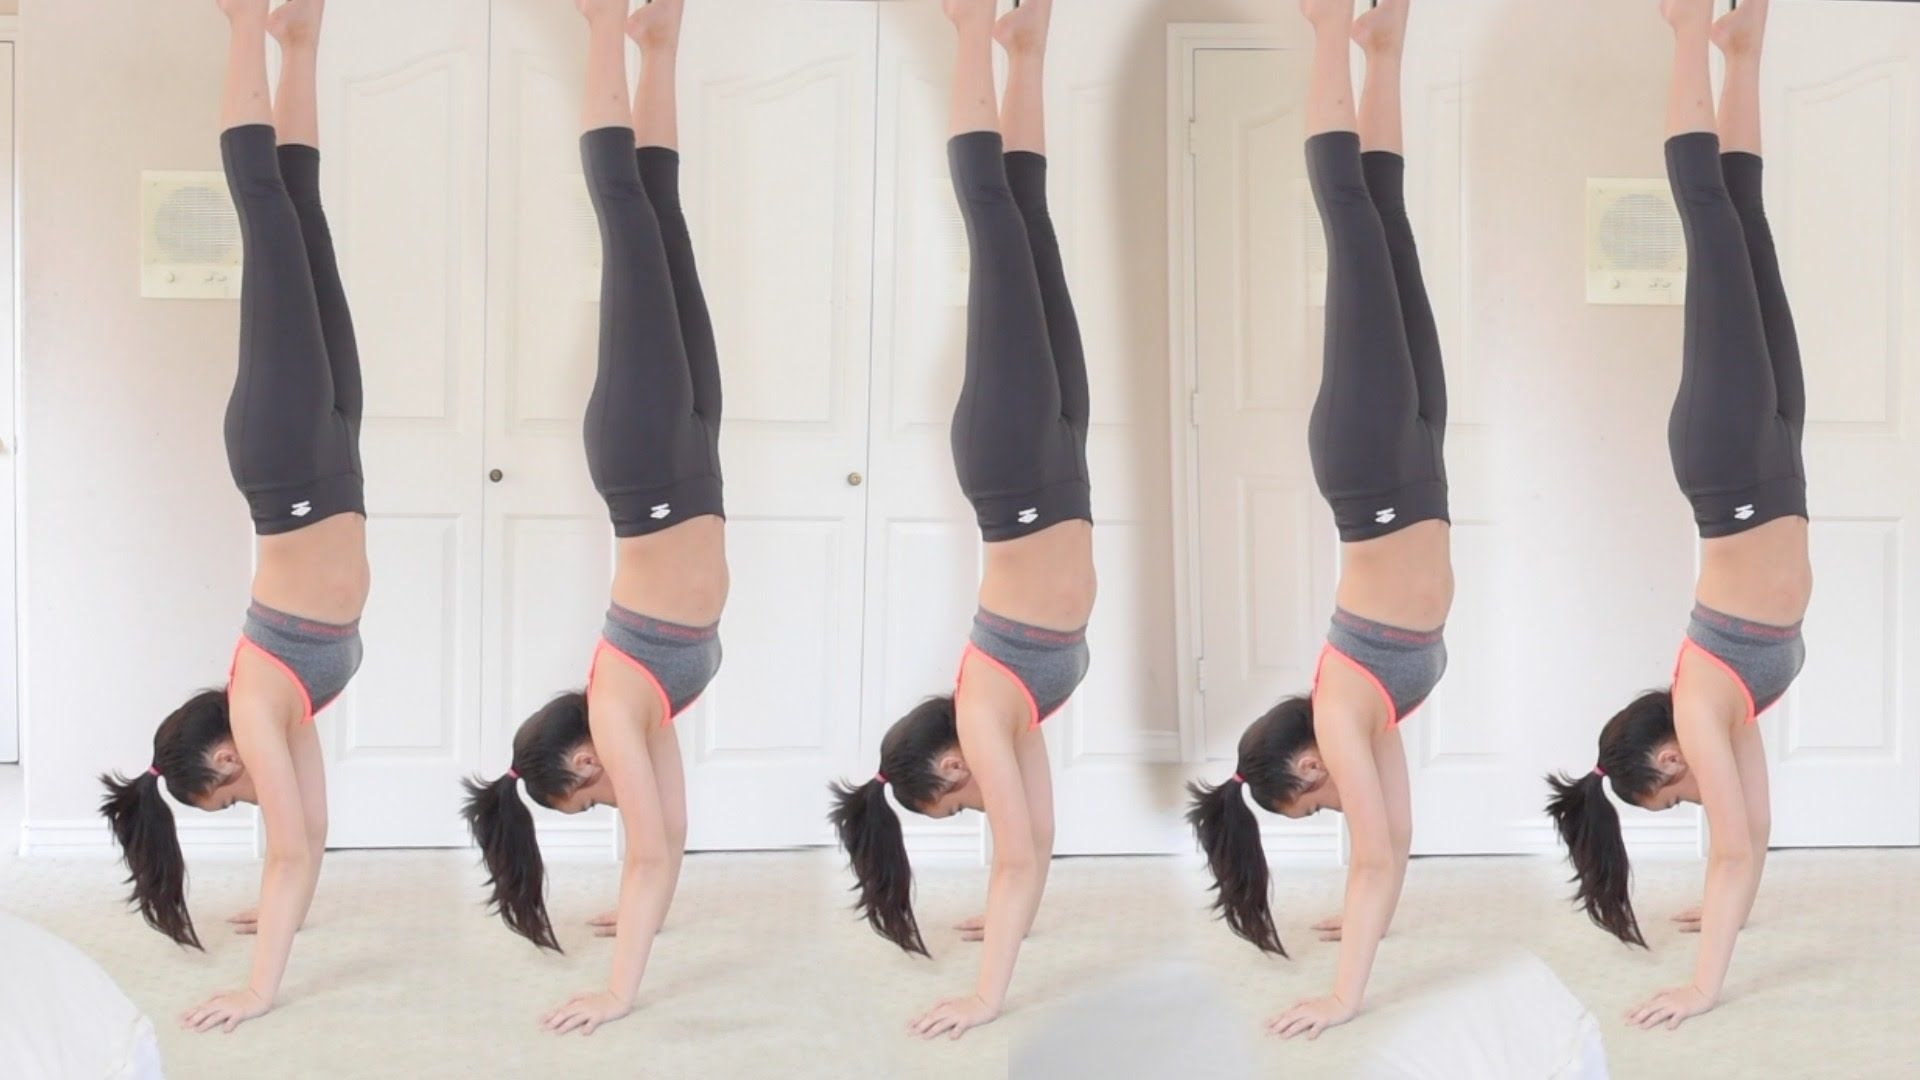 How to do a handstand + hold it for a long time